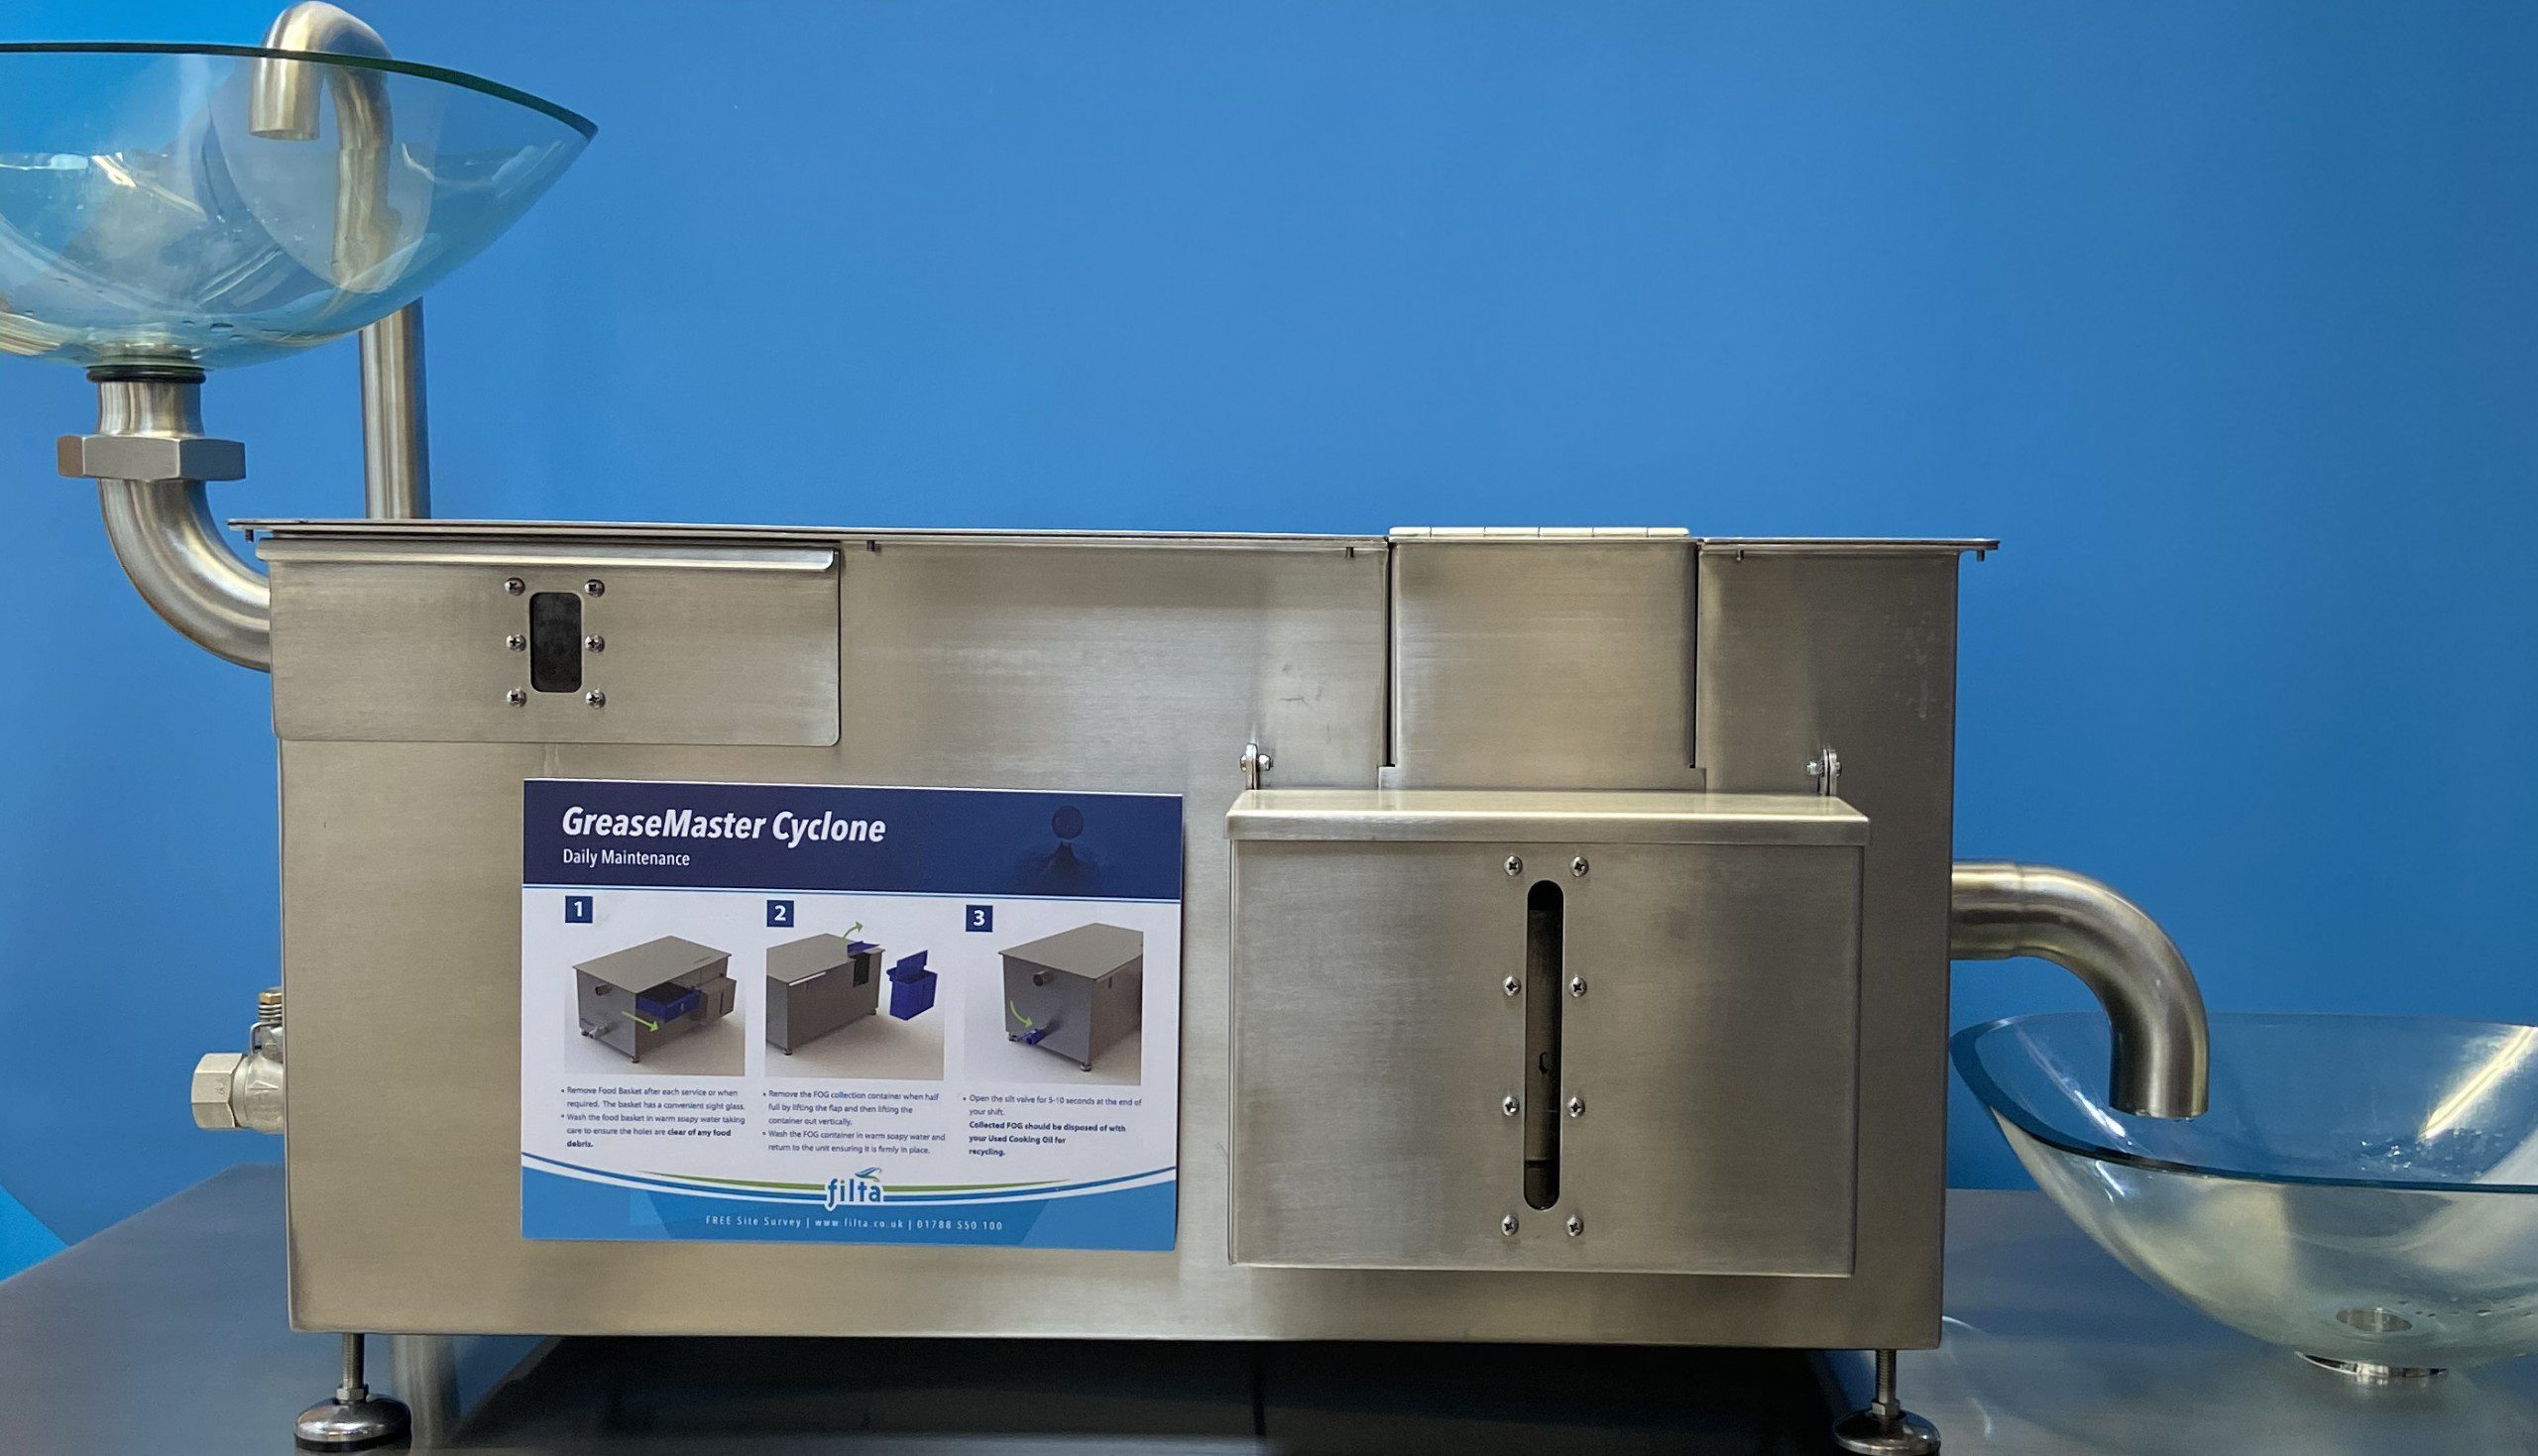 Greasemaster Cyclone - Grease Recovery Unit - Grease Management - Filta Environmental UK